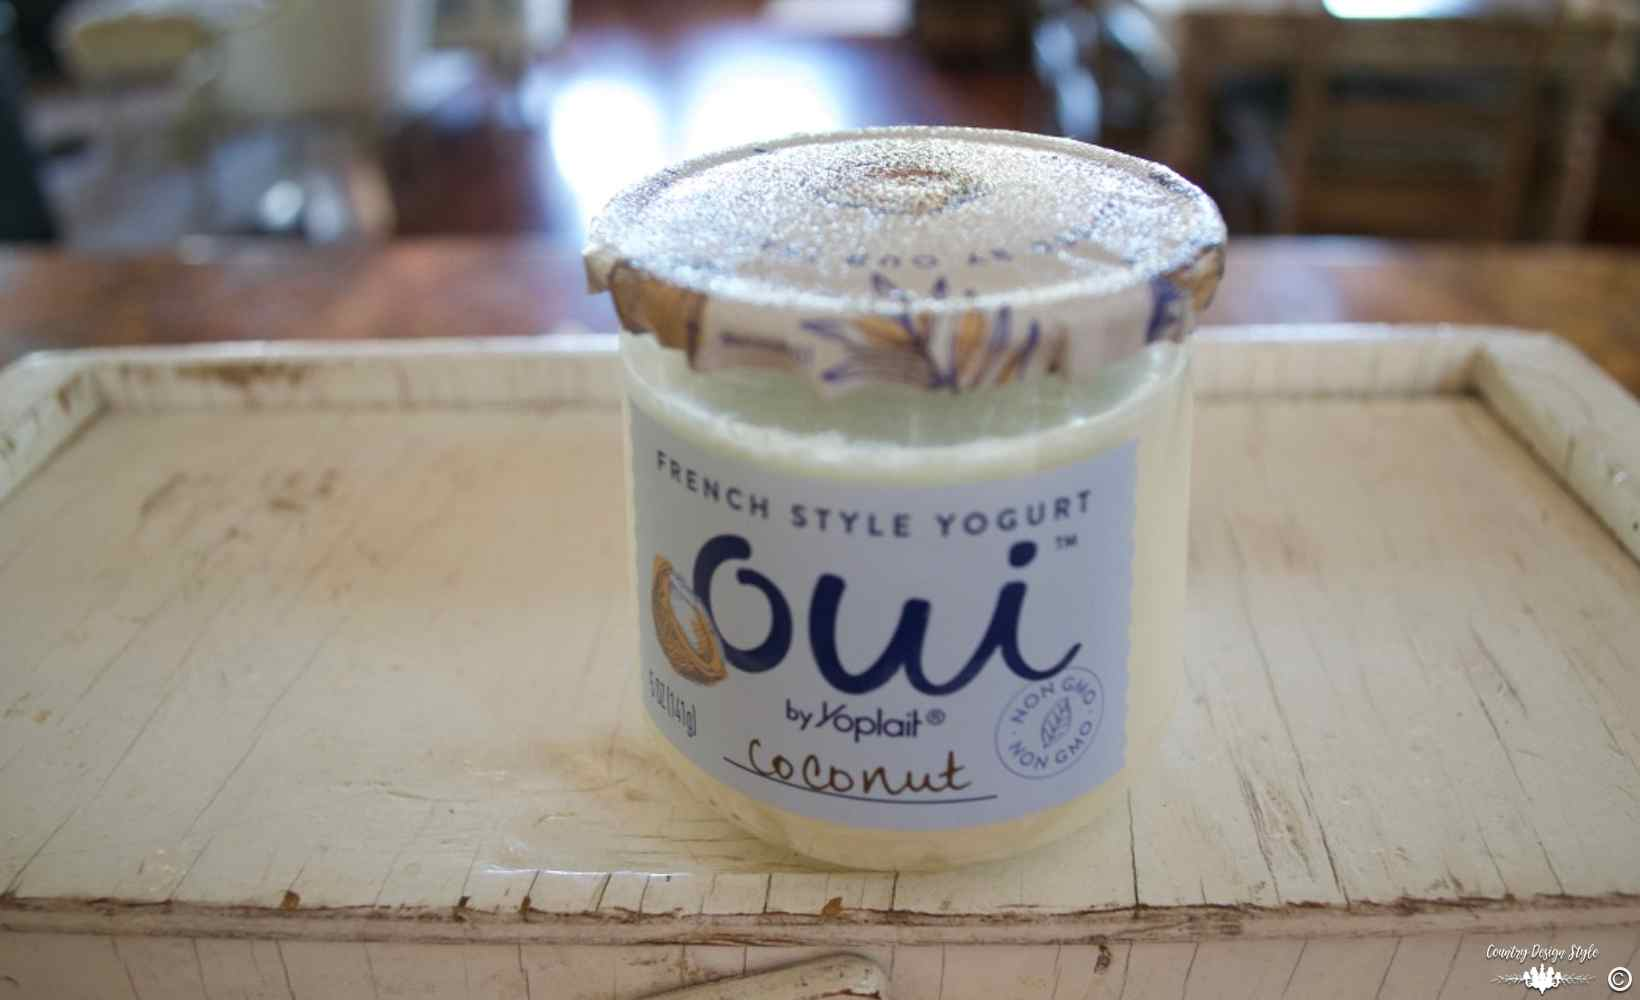 Craft Containers Organizing small items yogurt | Country Design Style | countrydesignstyle.com